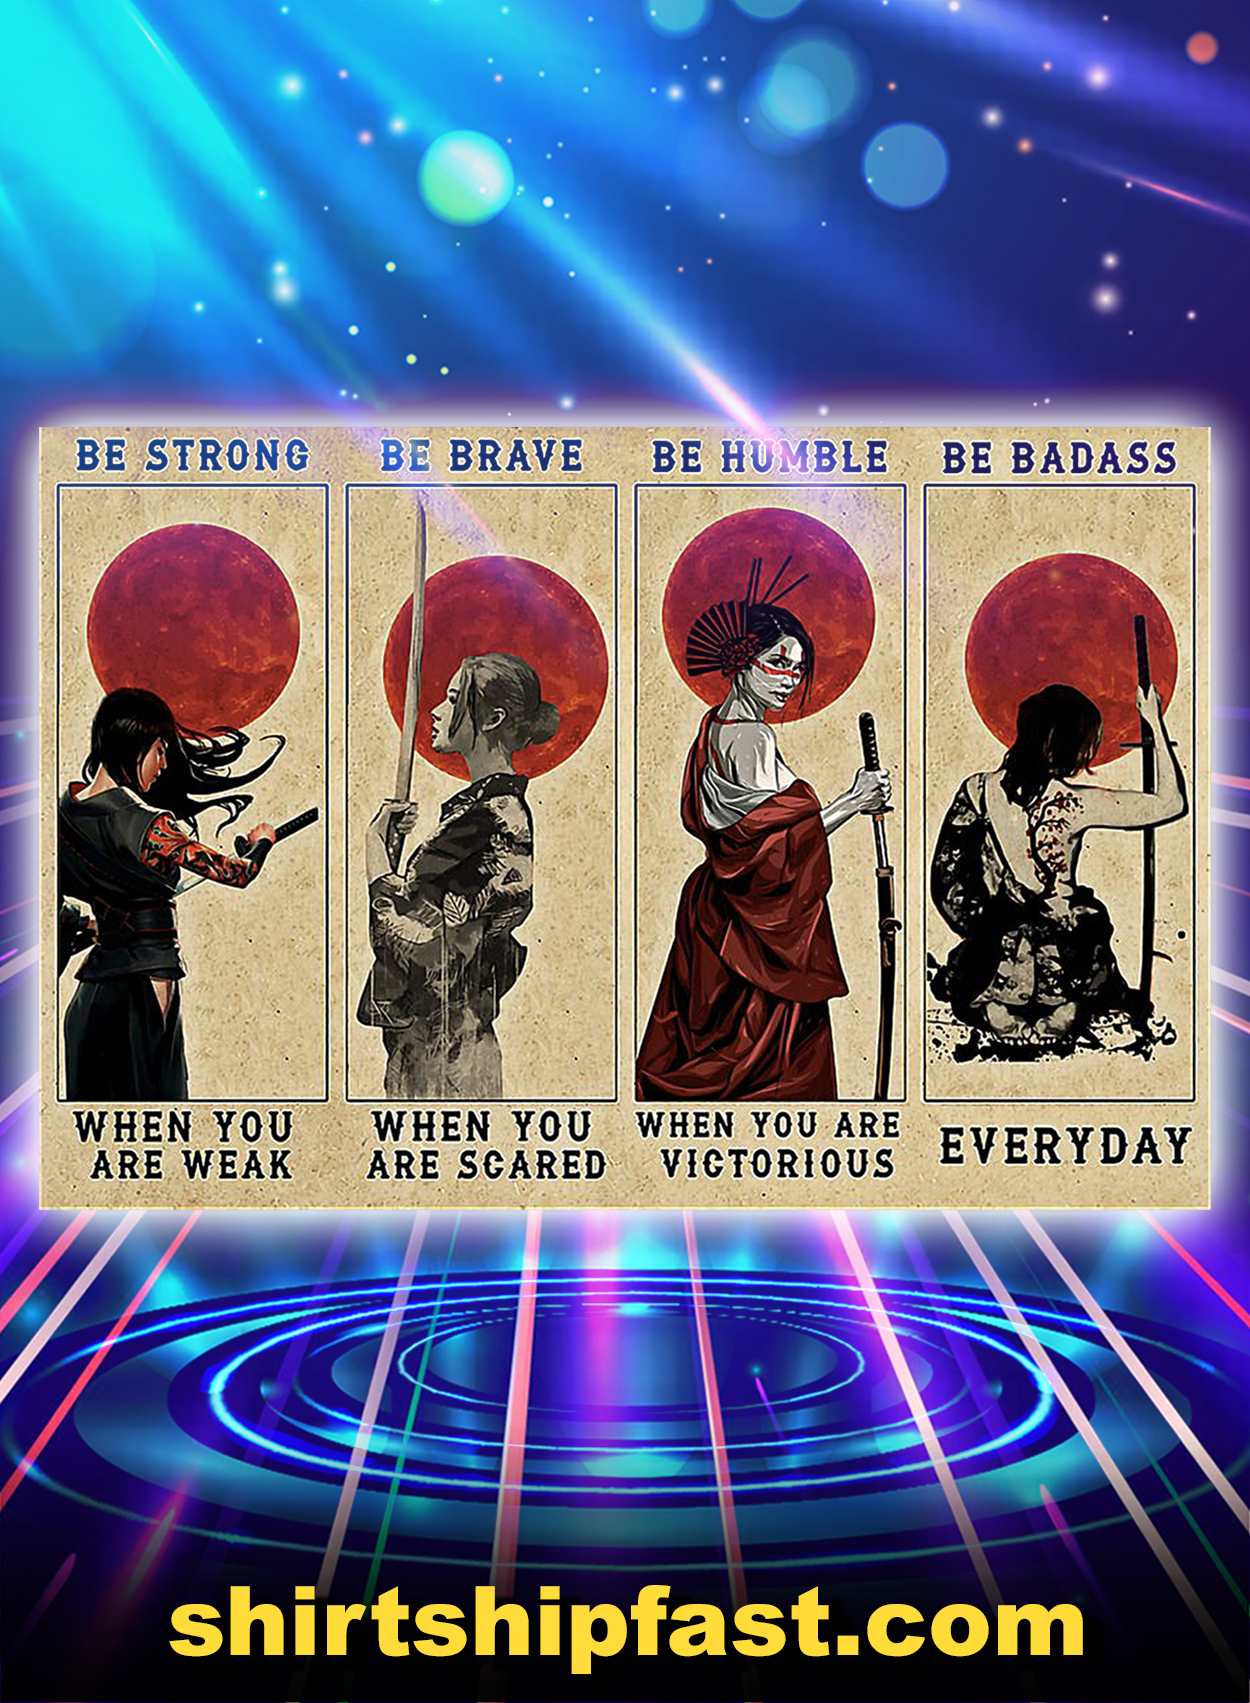 Samurai women be strong be brave be humble be badass poster - A3